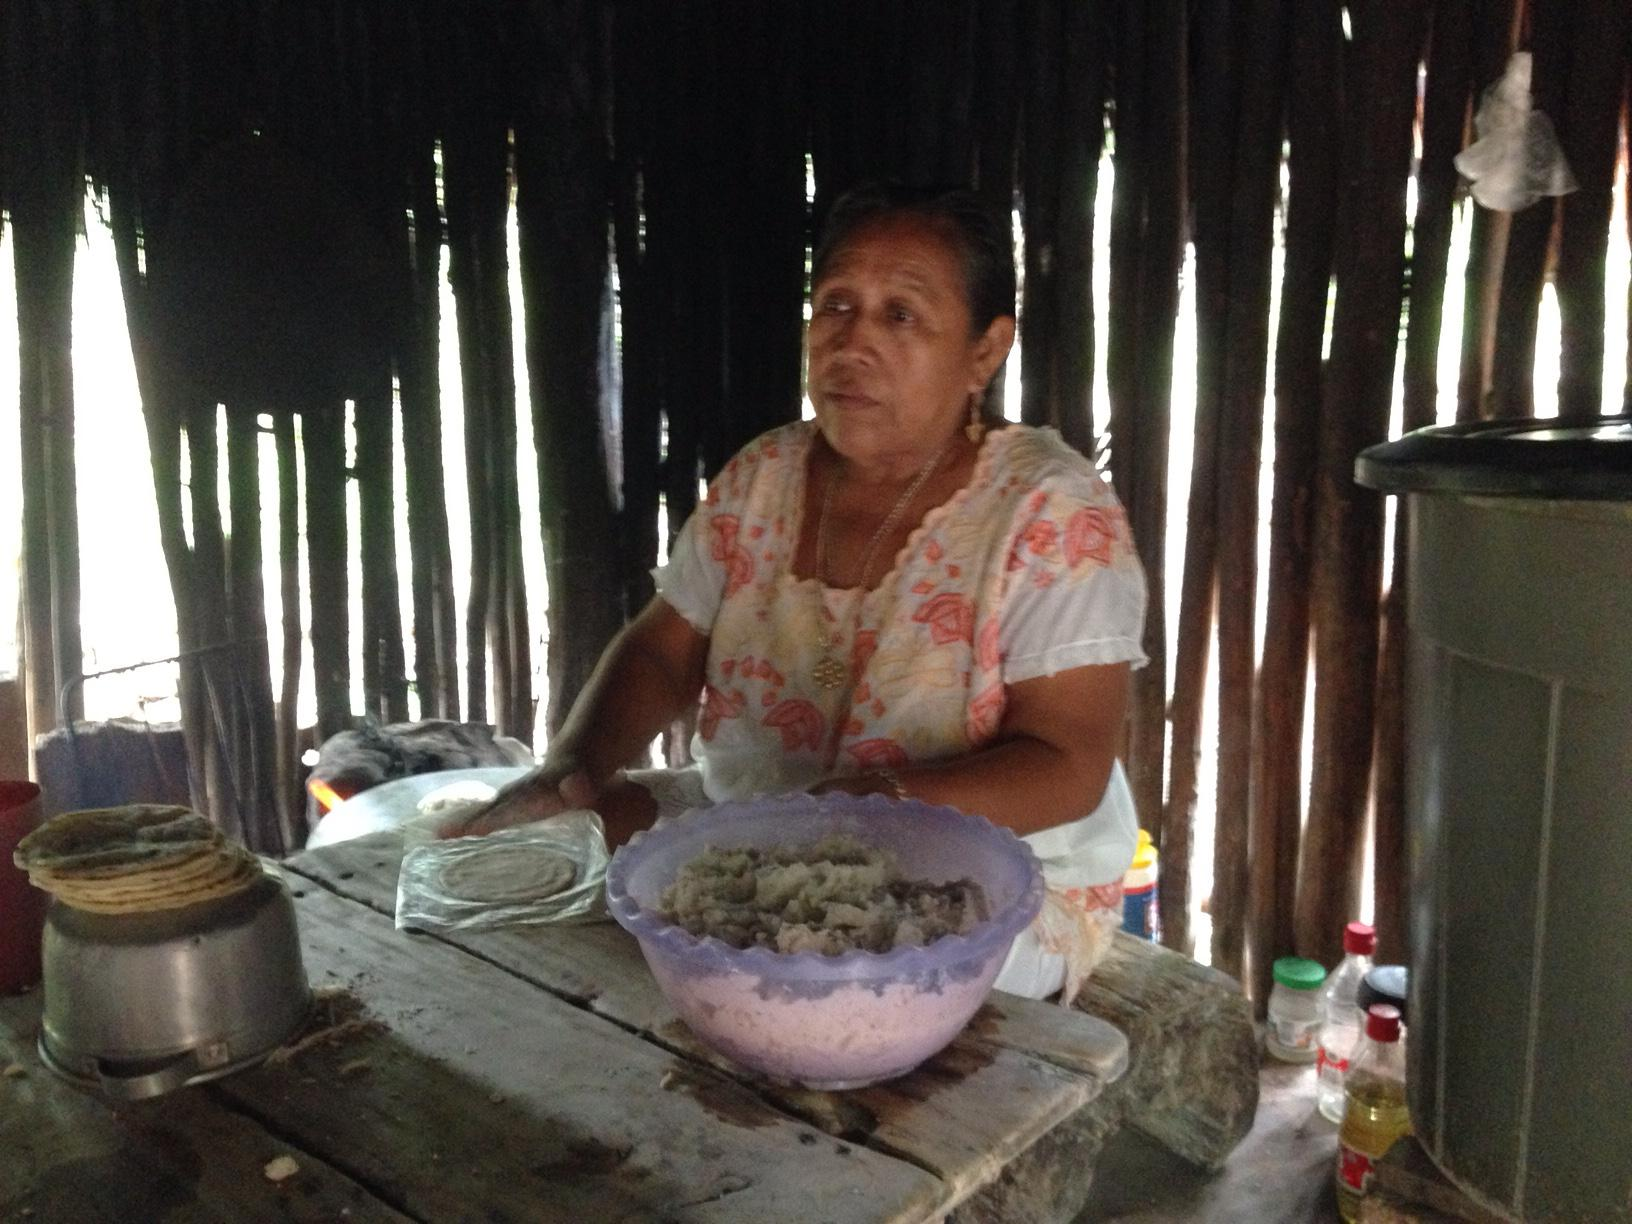 Francisca works in her kitchen to make tortillas from the ground corn meal. She cooks them on a very hot stone (on the ground just to her right) turning them with her fingers! Ouch!